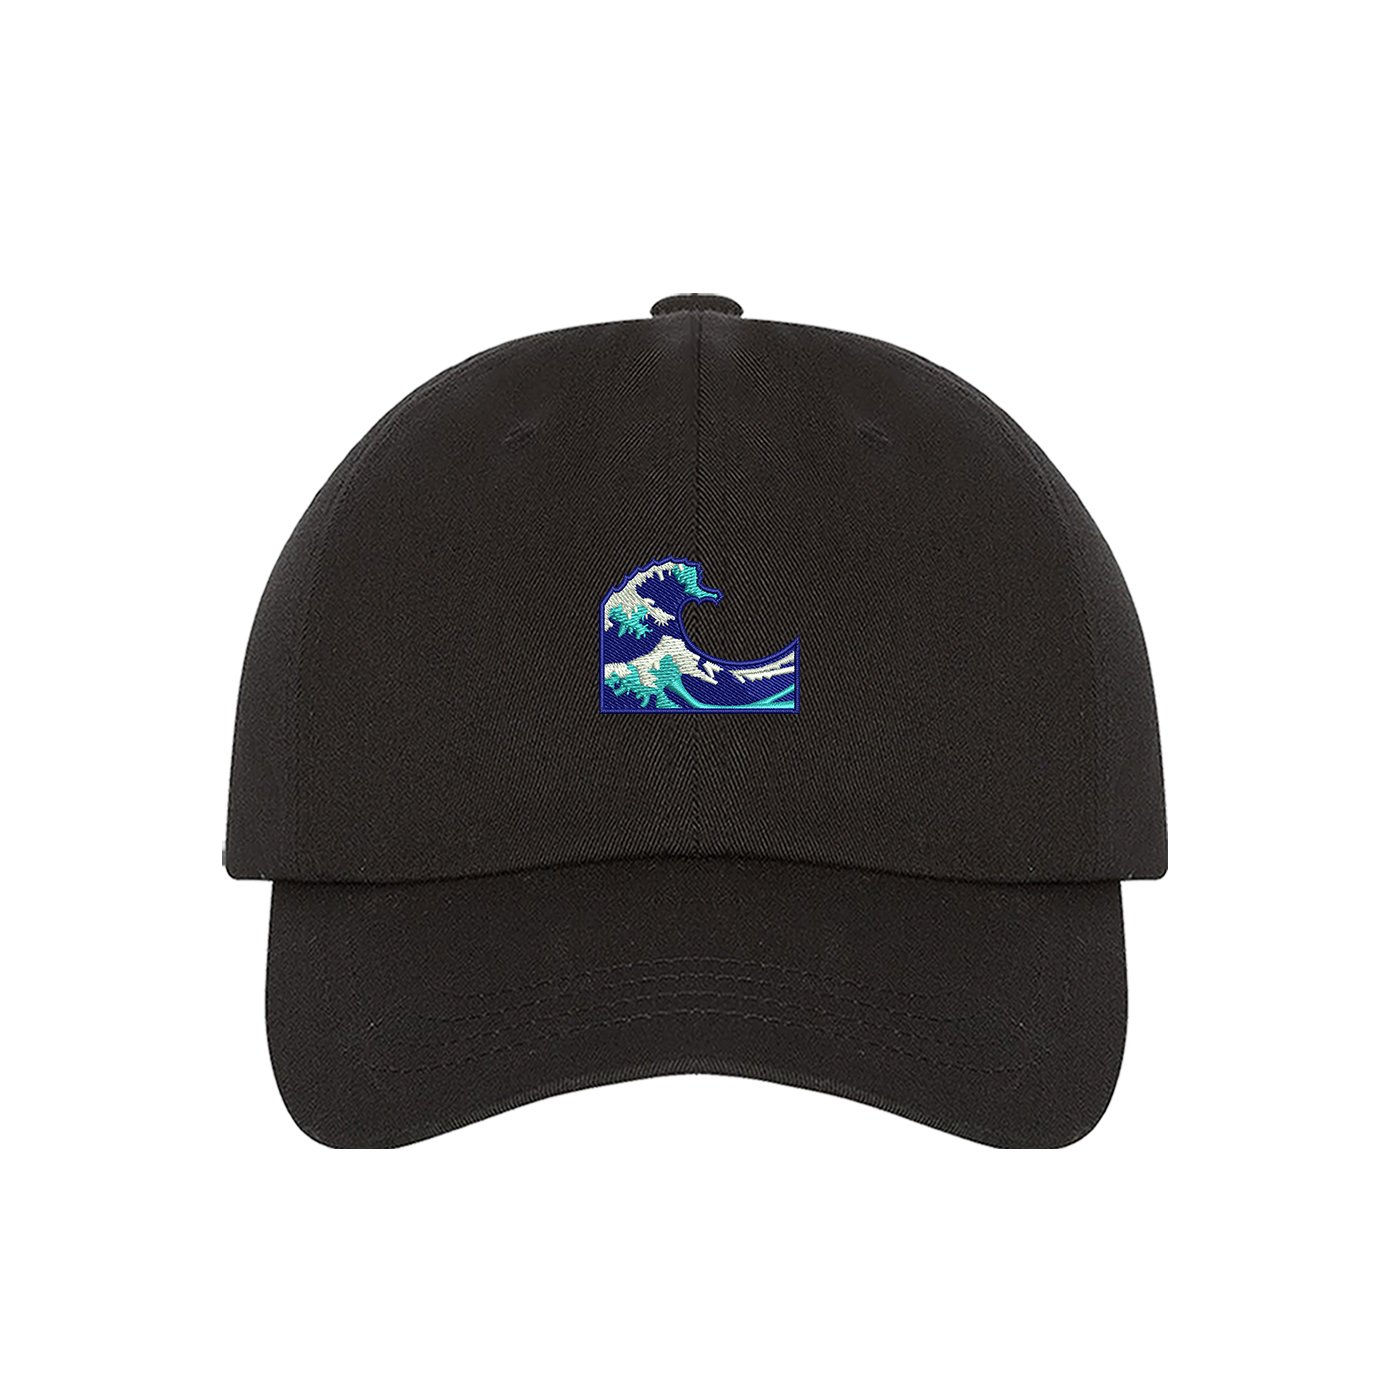 Prfcto Lifestyle Wave Emoji Dad Hat - Black Baseball Hat - Unisex